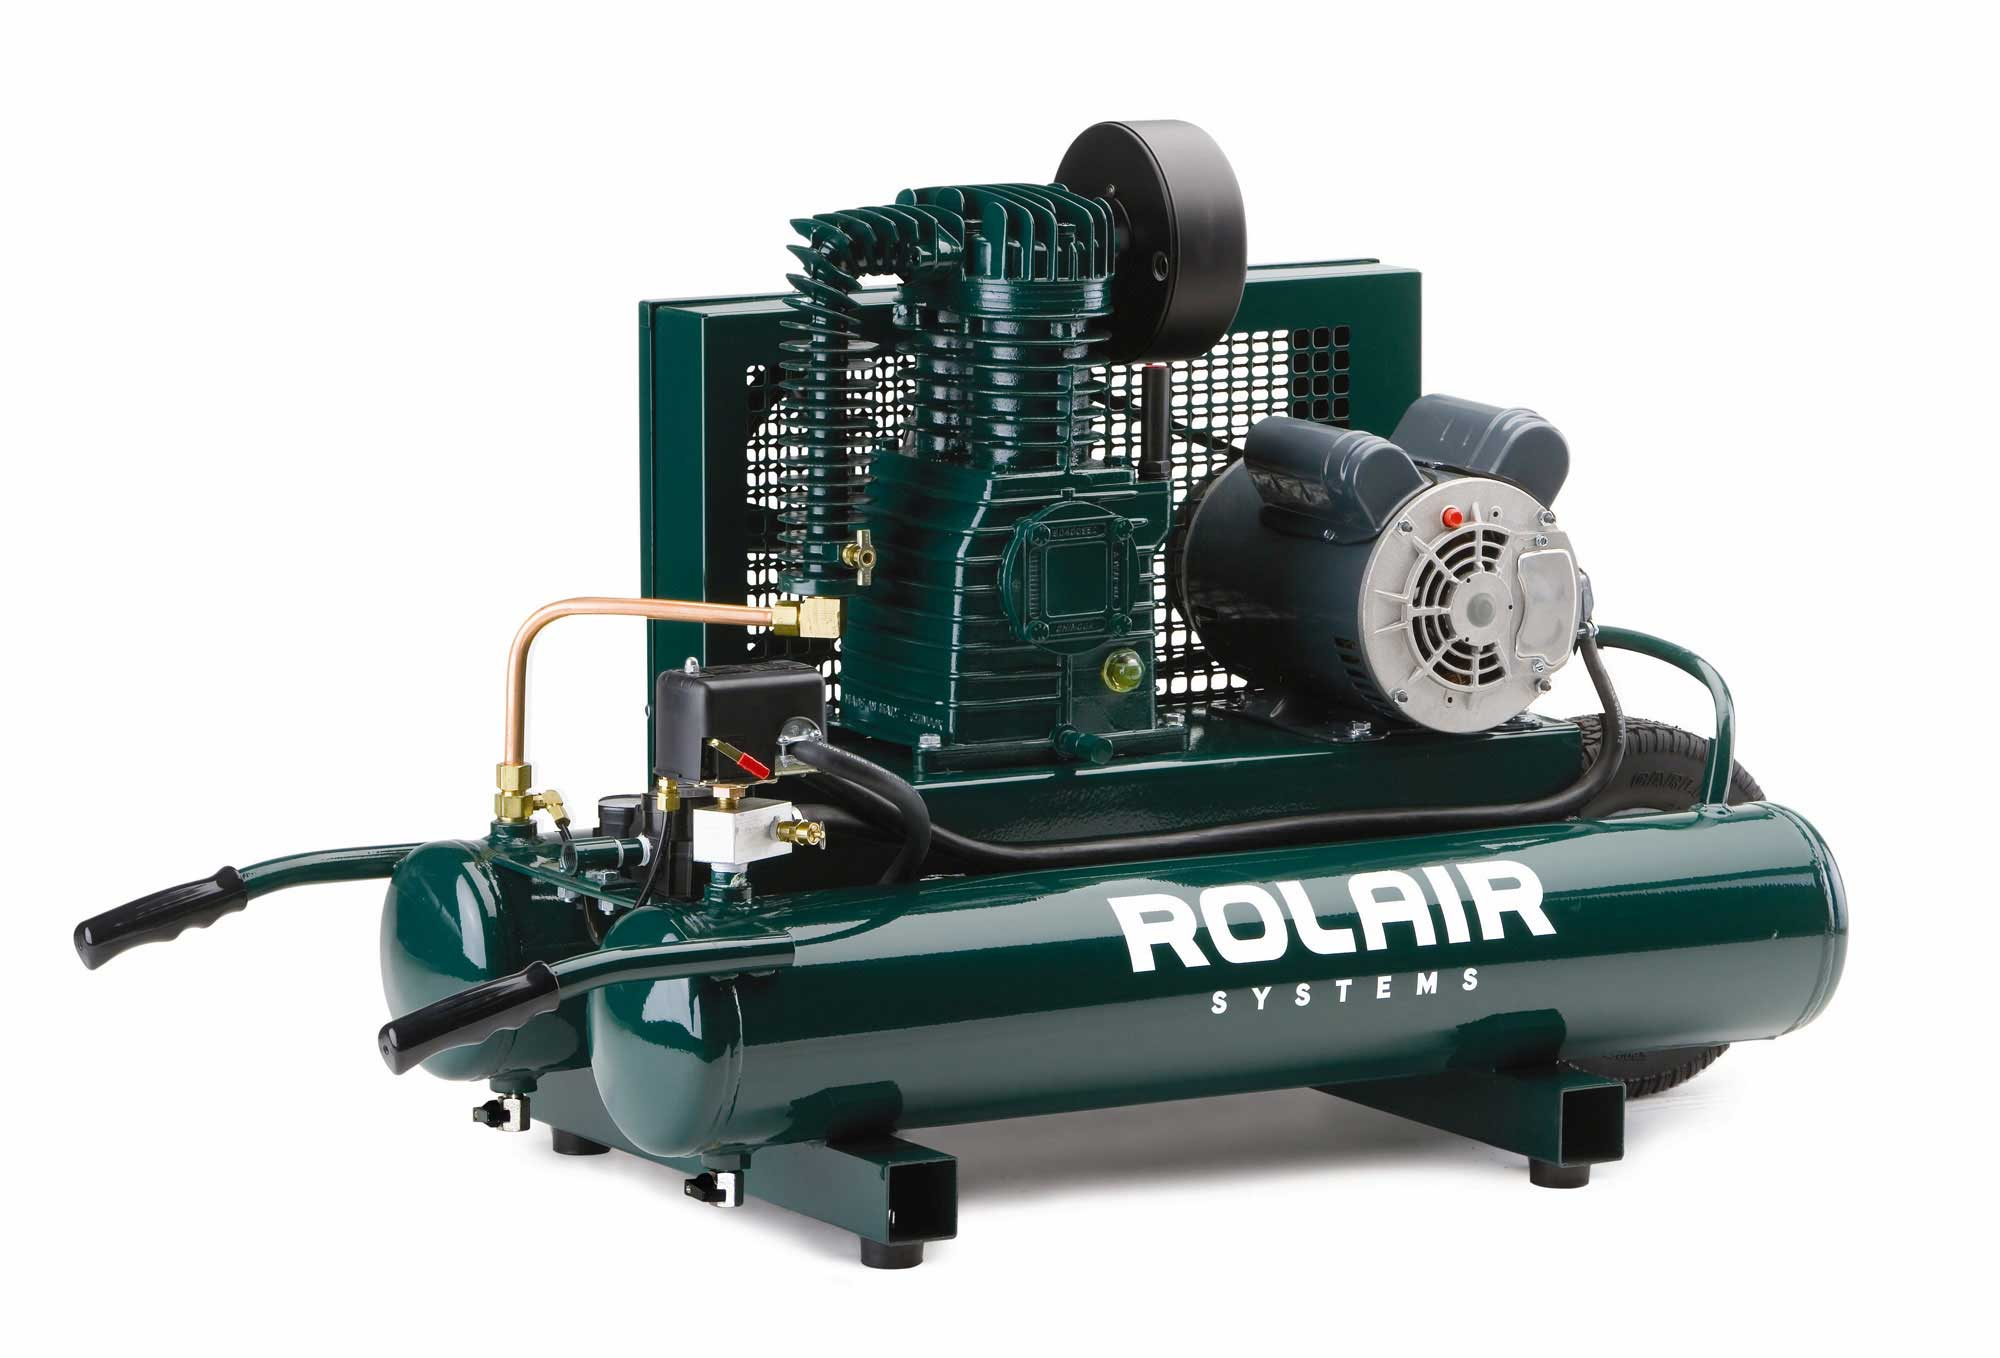 Rolair 1.5 HP 9 Gallon Air Compressor  5715K17